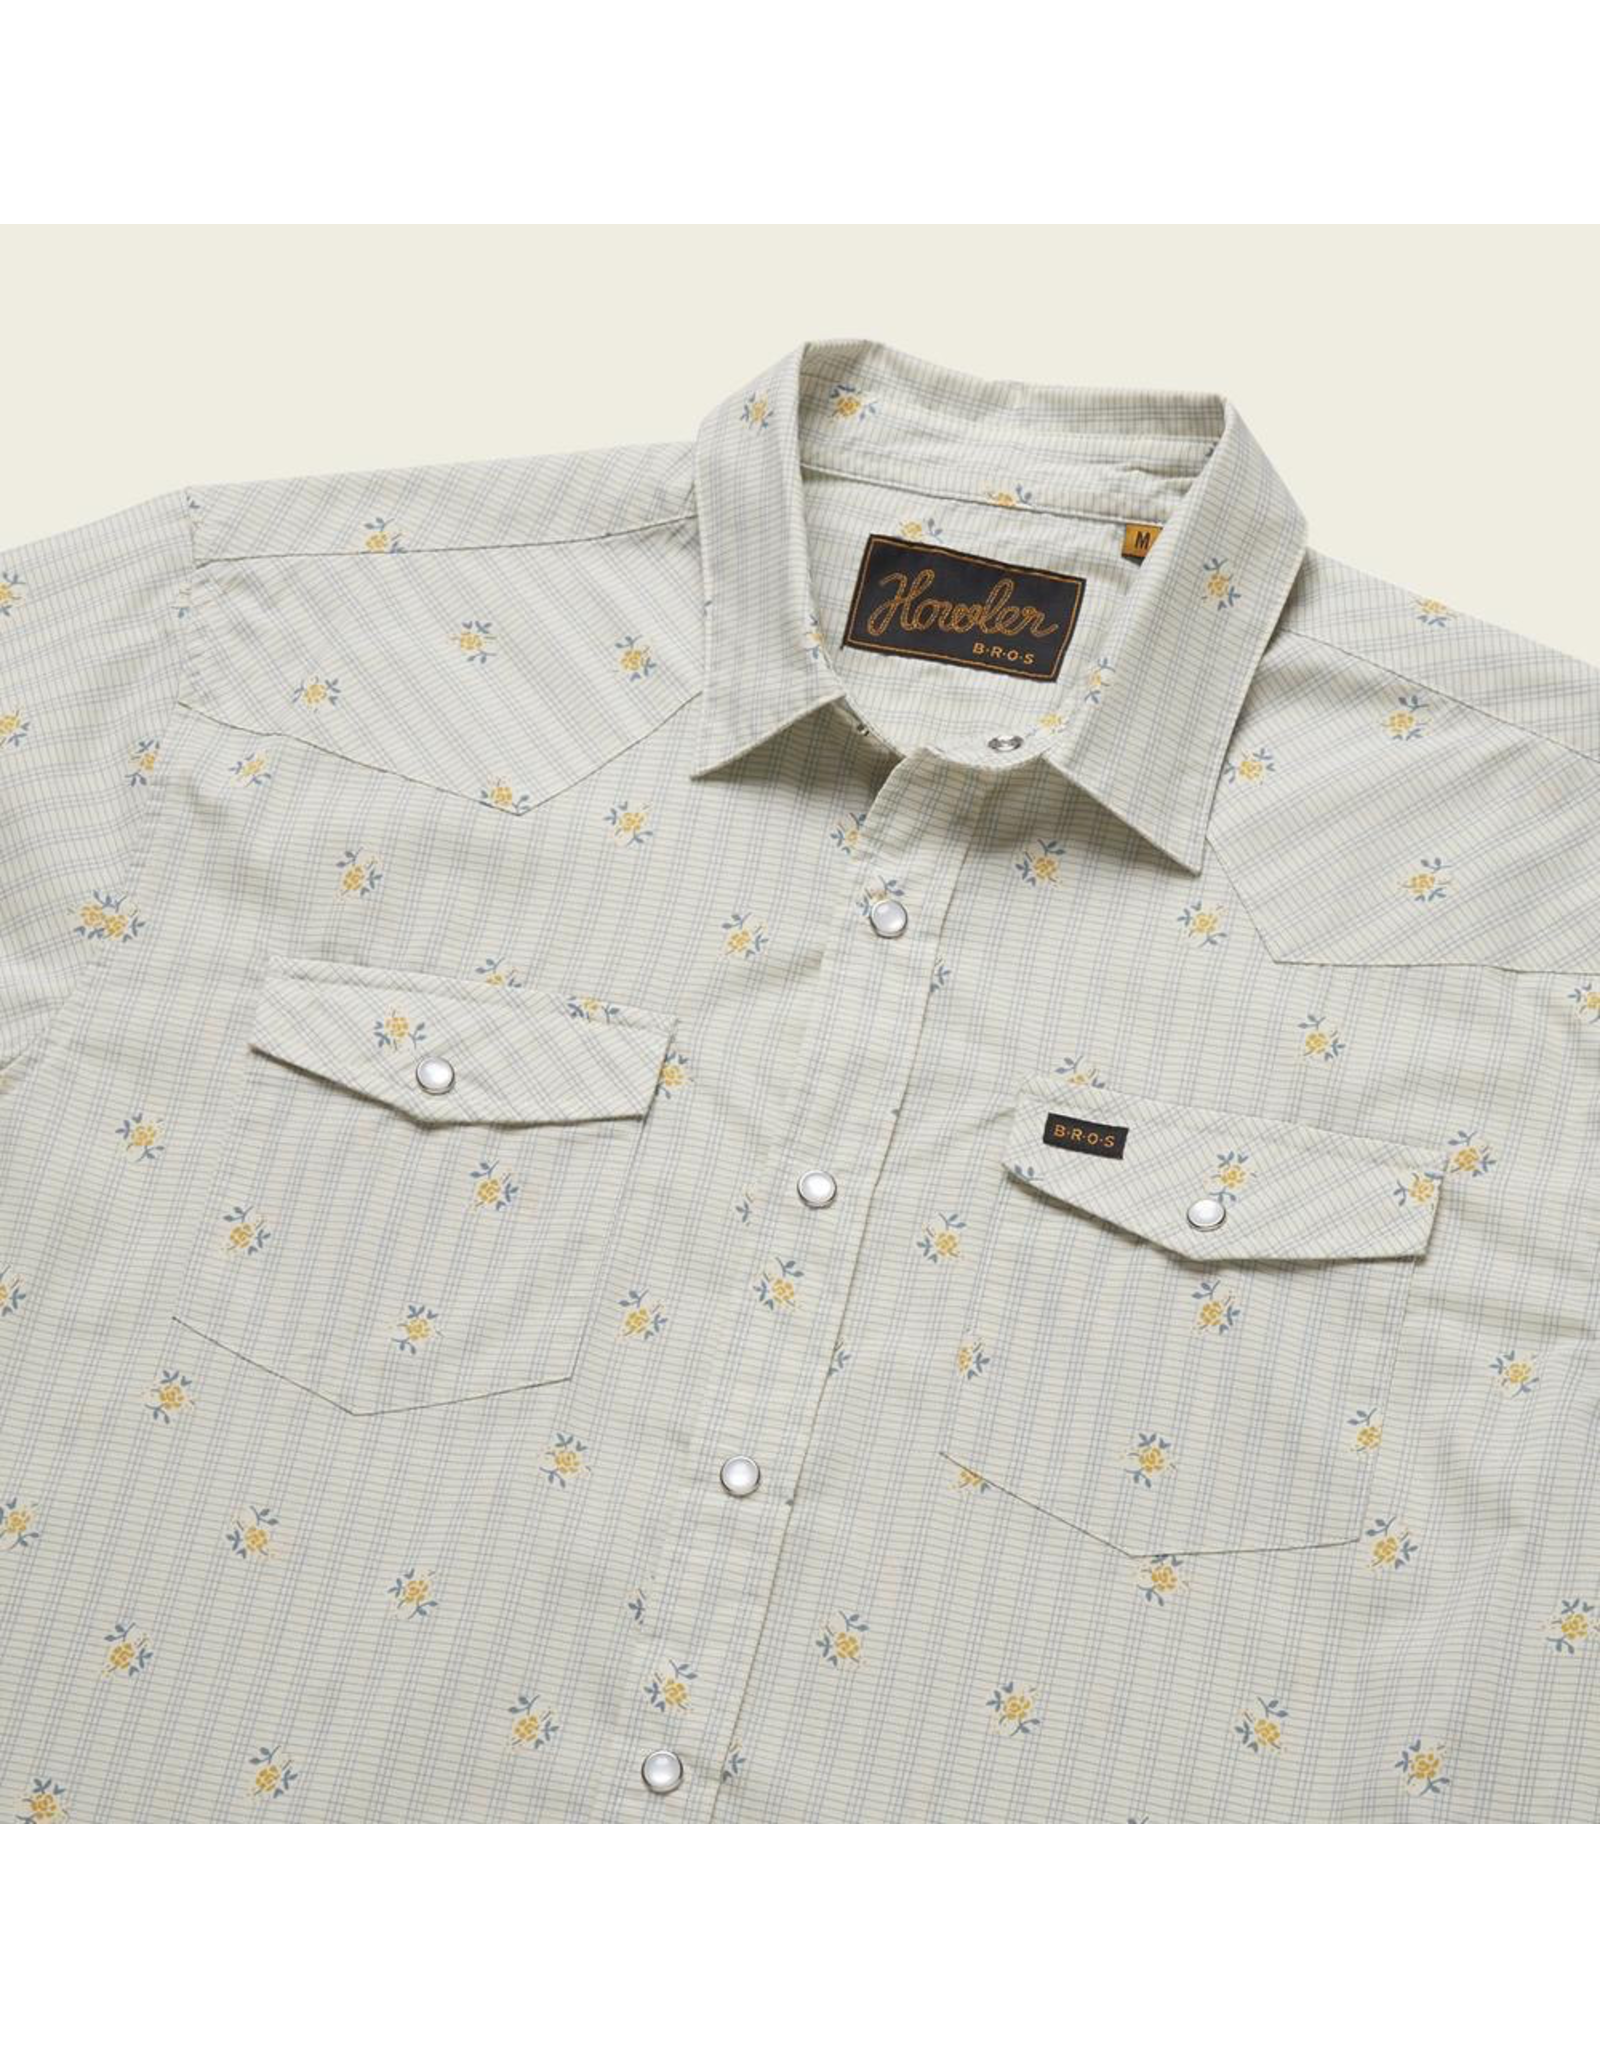 This high performance western snapshirt is standard fare